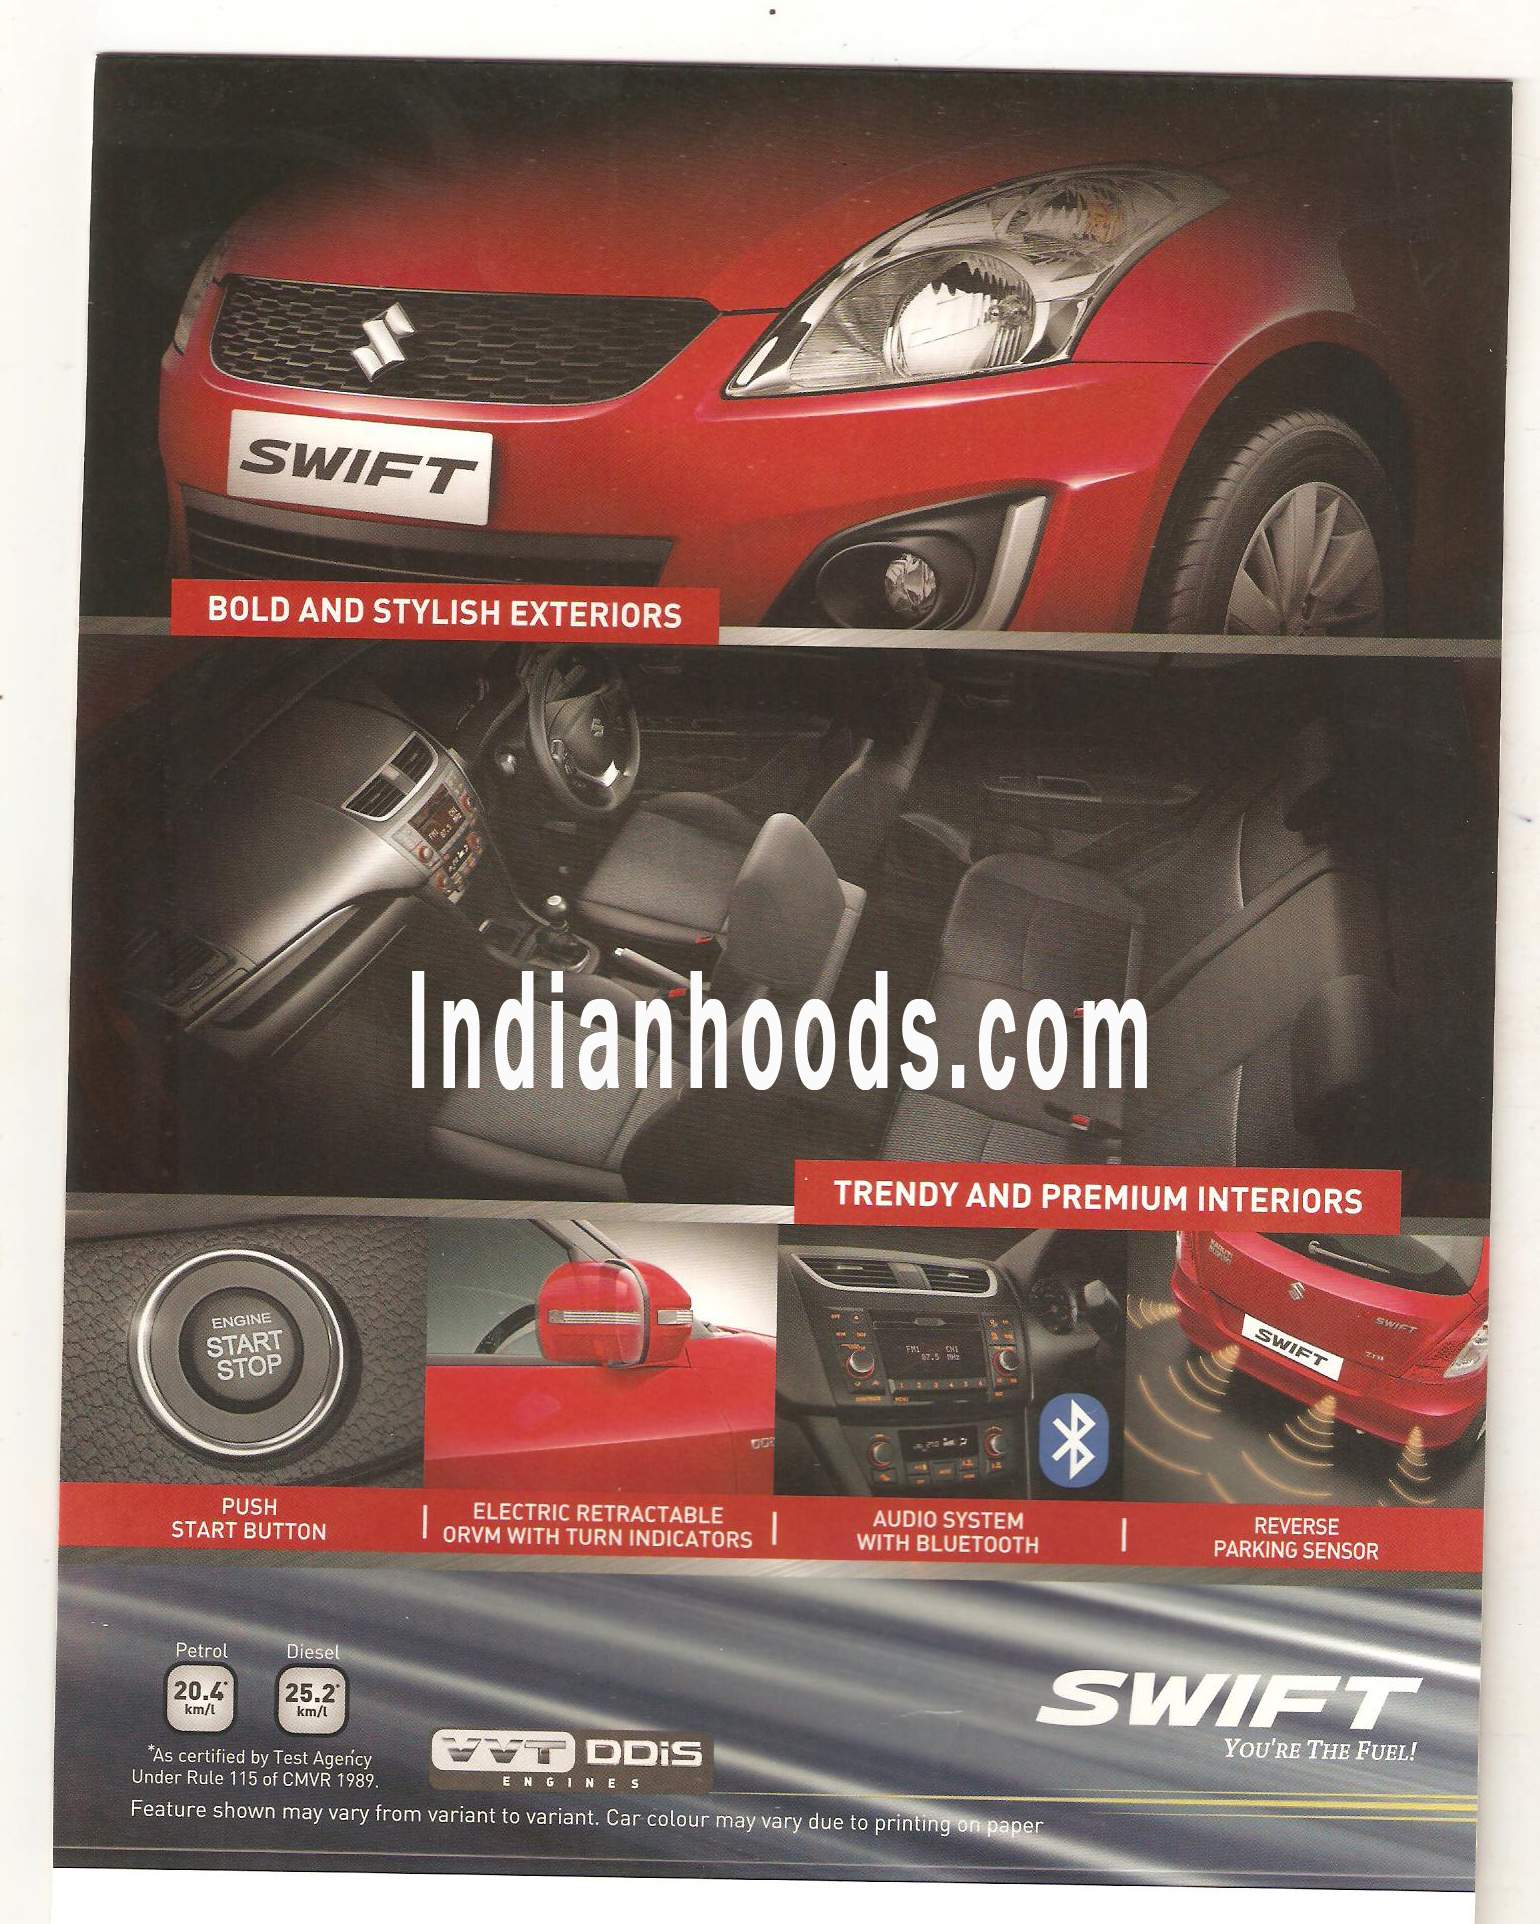 2015-Maruti-Swift-facelift-brochure